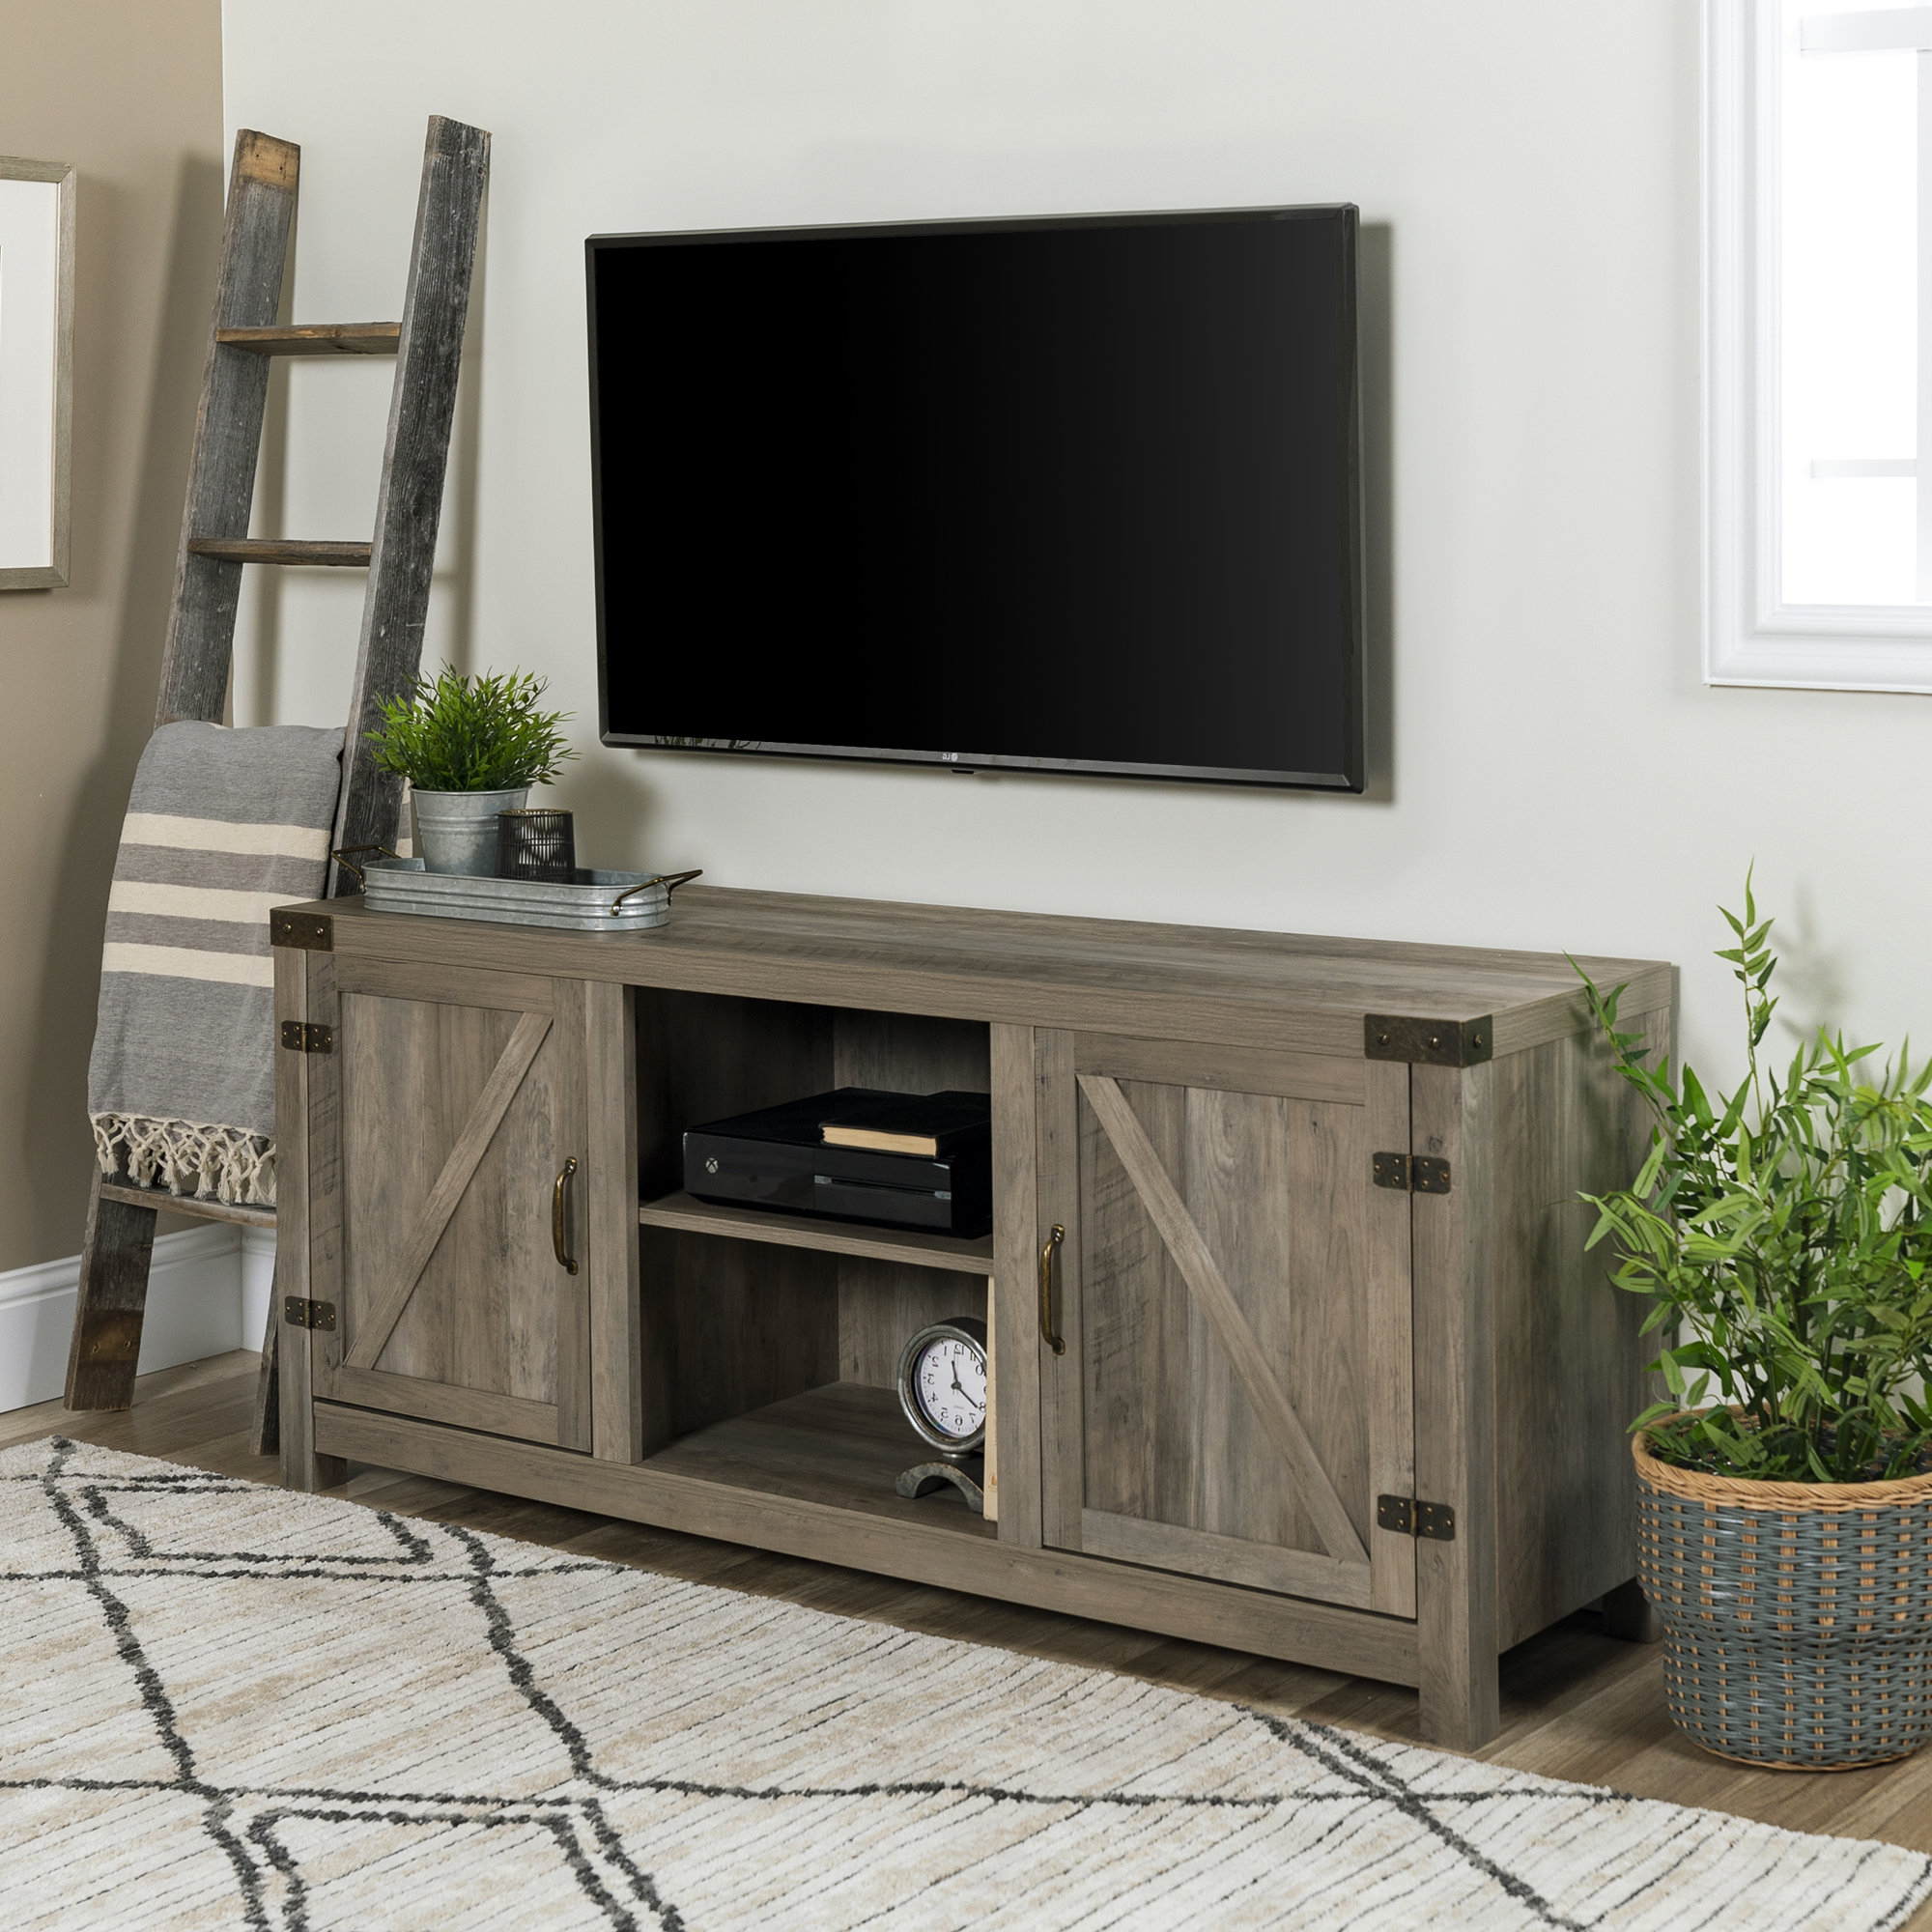 72 Inch Tv Stand | Wayfair In Laurent 60 Inch Tv Stands (Gallery 5 of 20)